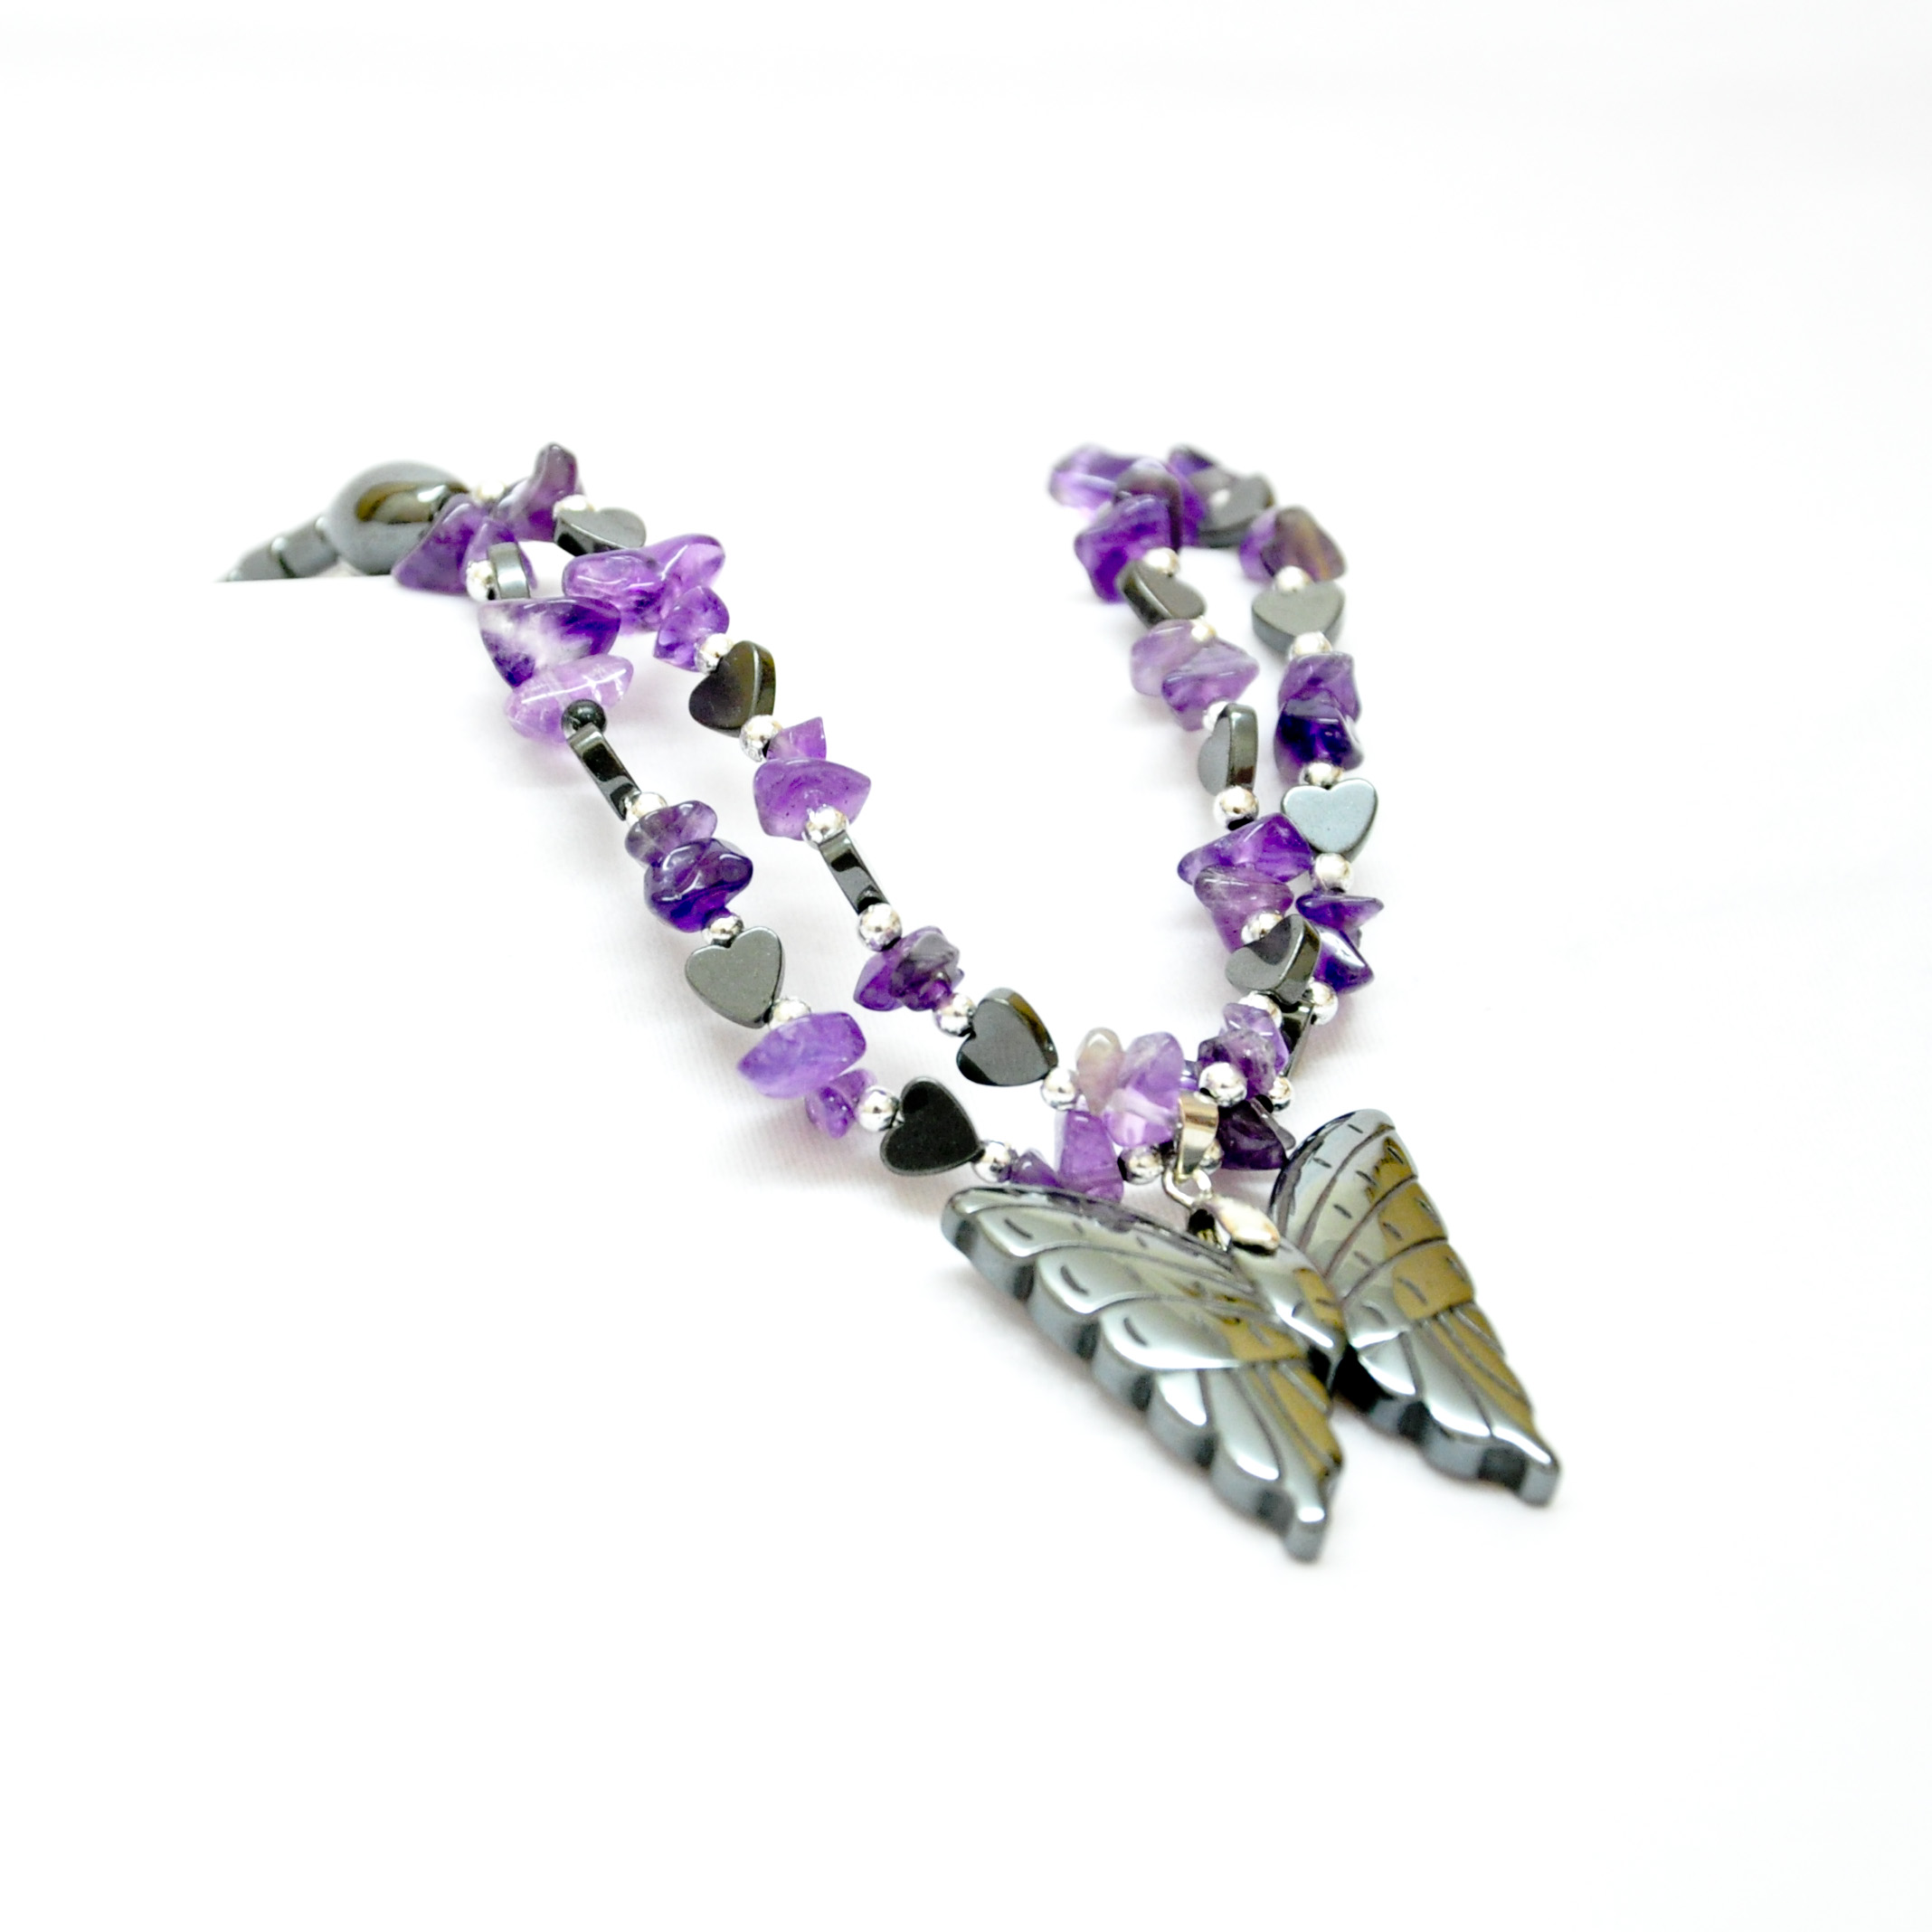 Hematite and amethyst butterfly necklace